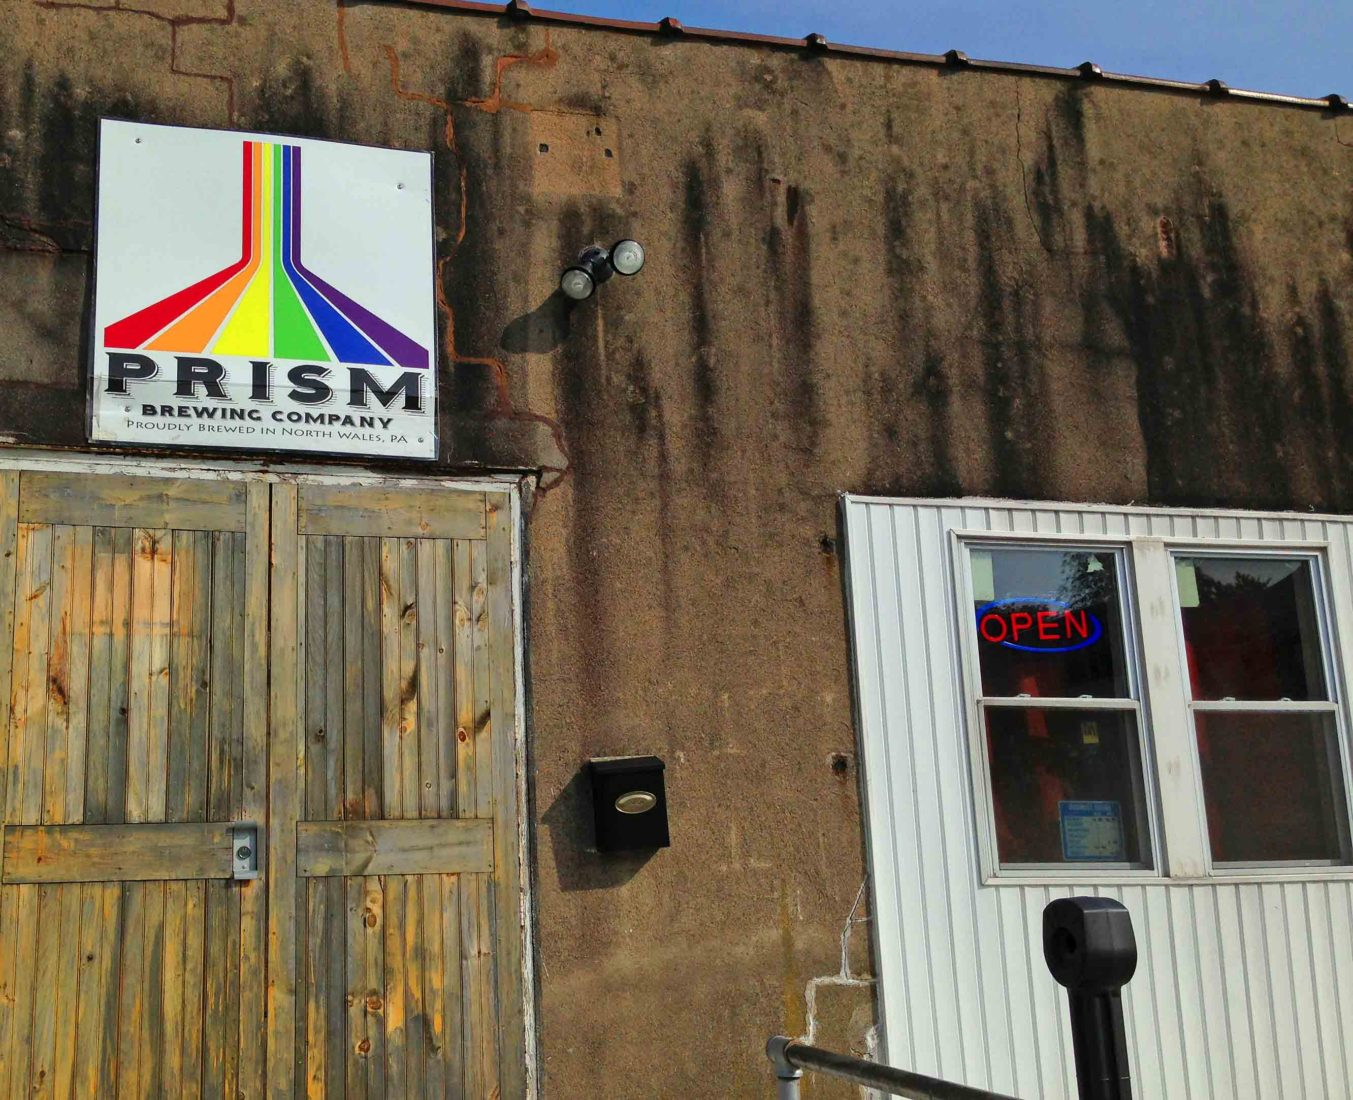 158. Prism Brewery, North Wales PA 2013